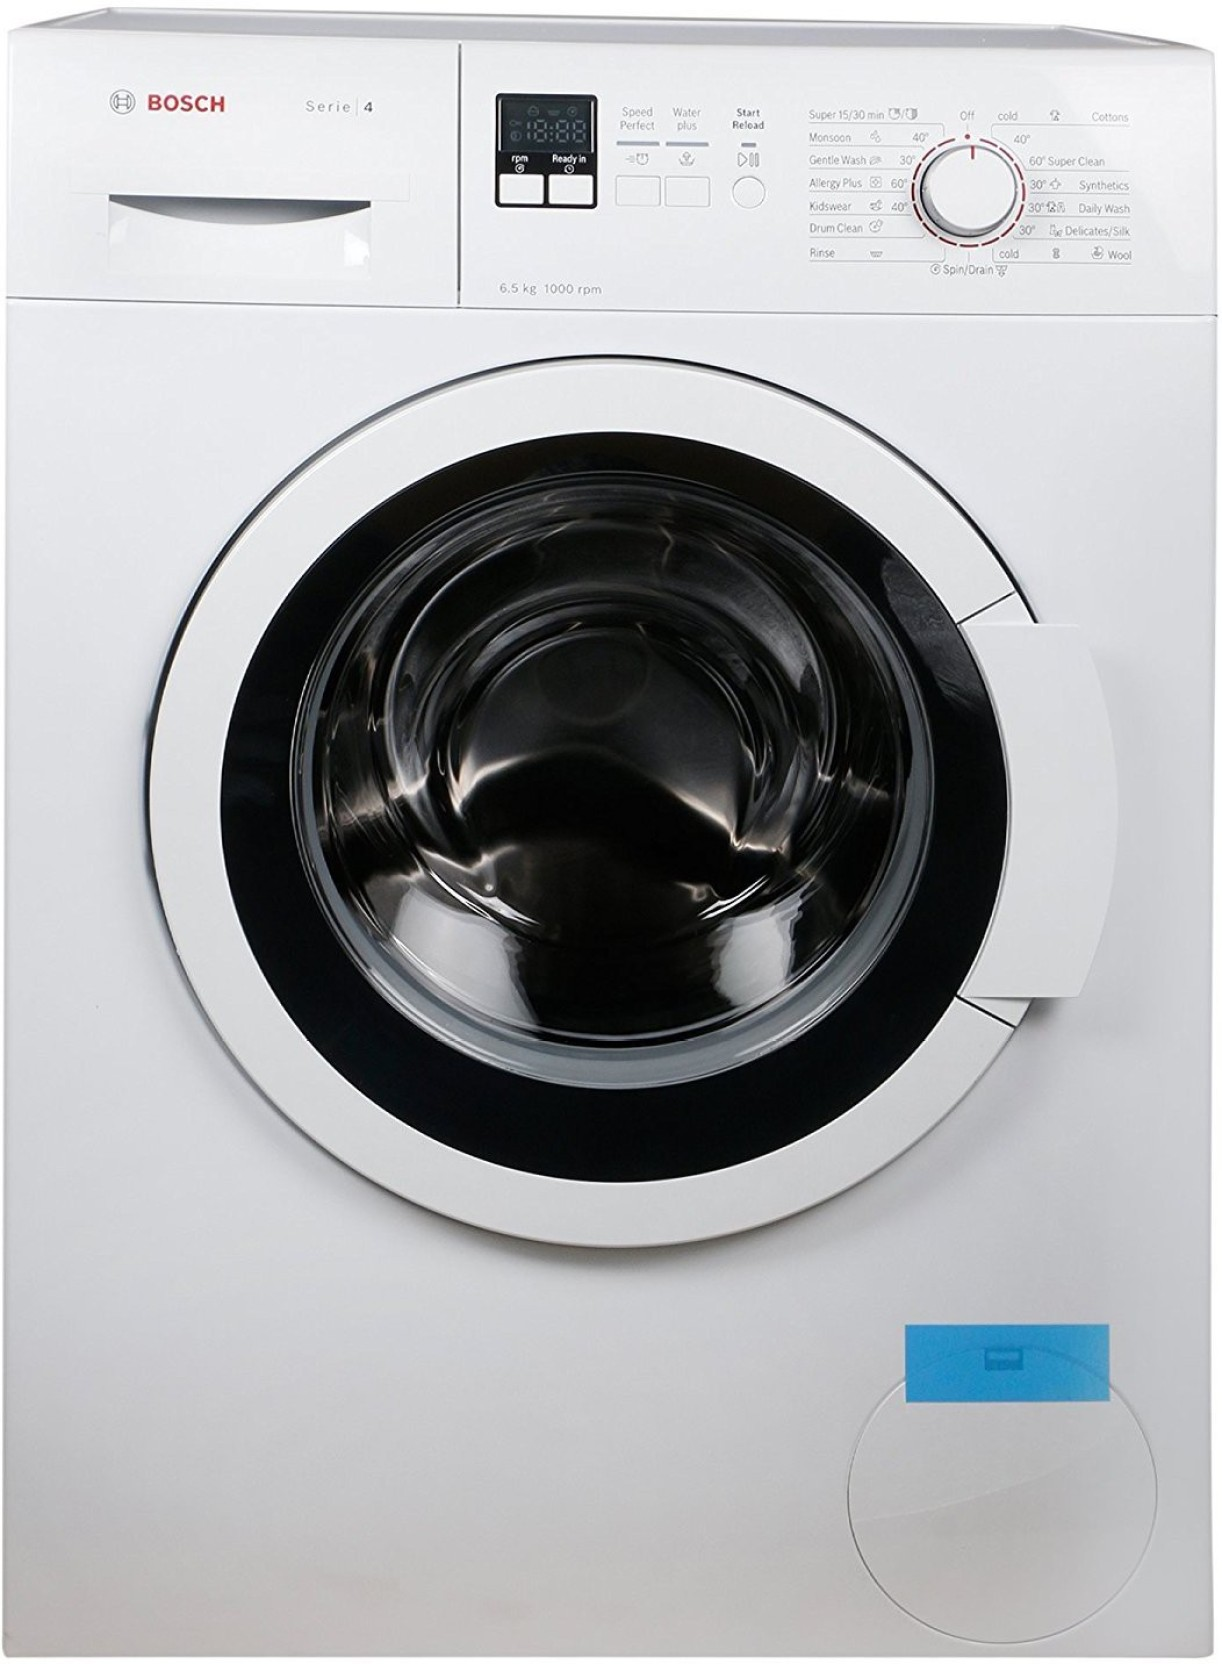 Bosch 65 Kg Fully Automatic Front Load Washing Machine Price In Classixx Wiring Diagram Add To Cart